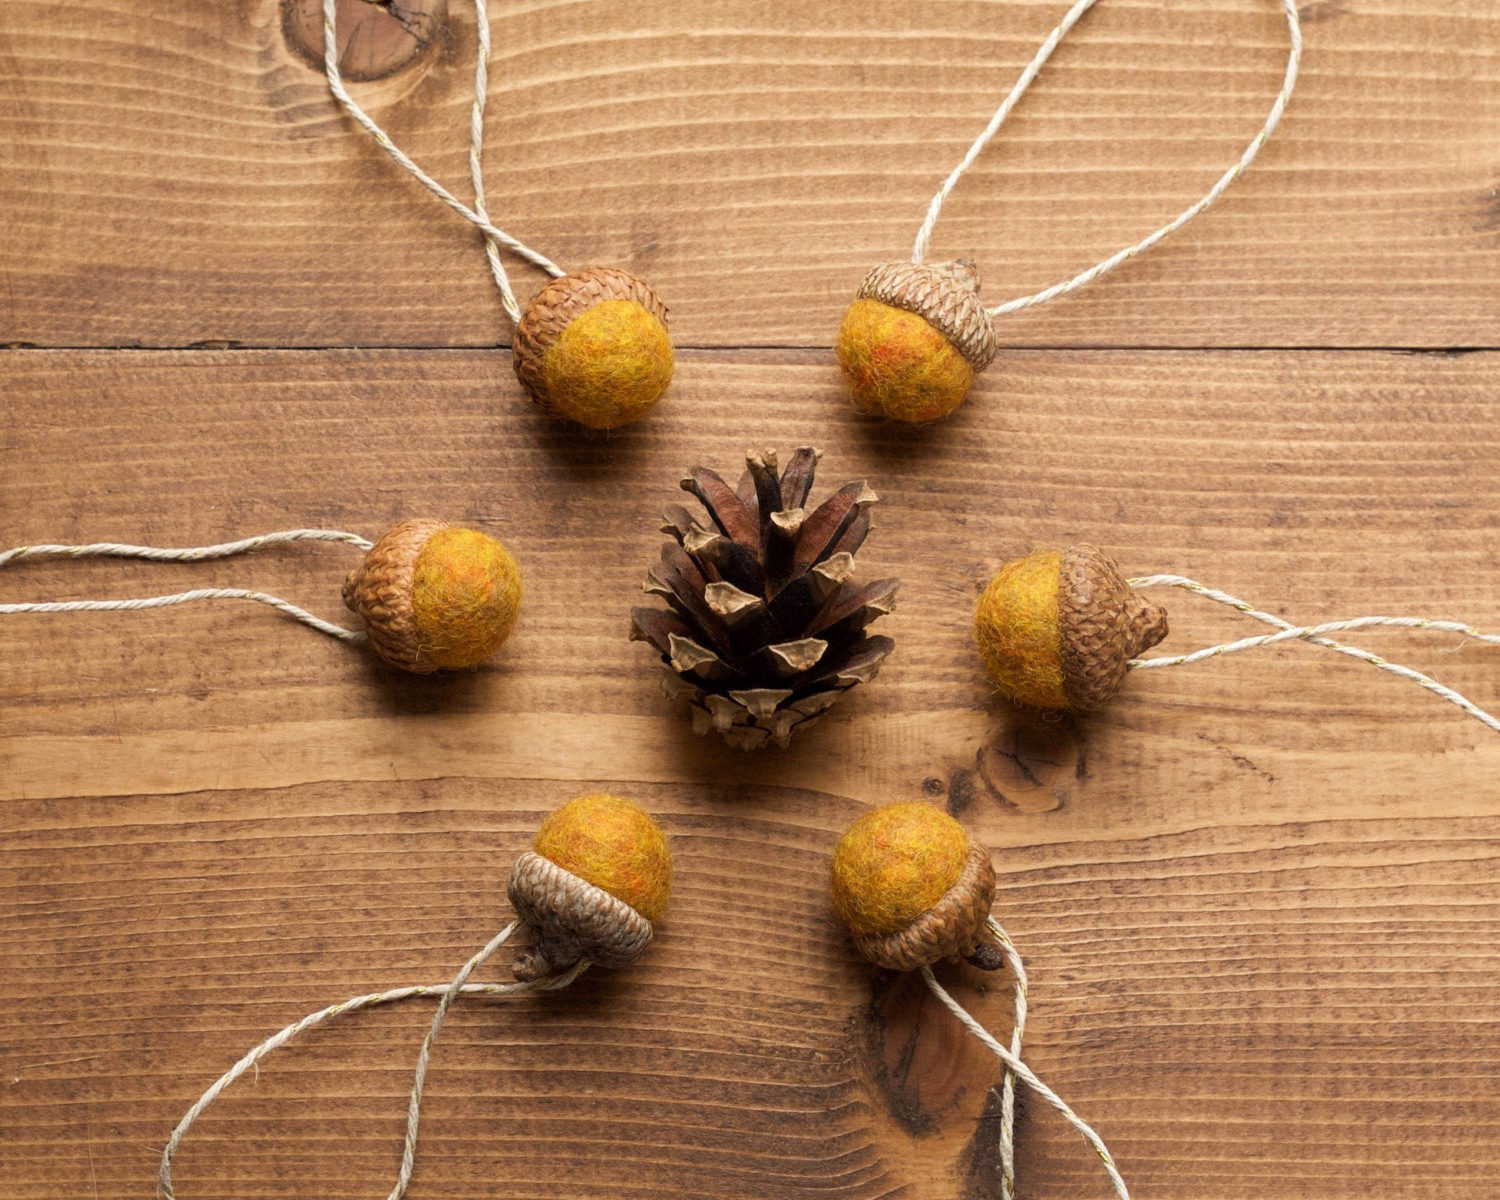 Harvest Gold Felted Acorn Ornaments, Golden Yellow, Mustard, Christmas, Holiday Gift Tie On, Fall, Winter, Hostess Gift, Thanksgiving Decor